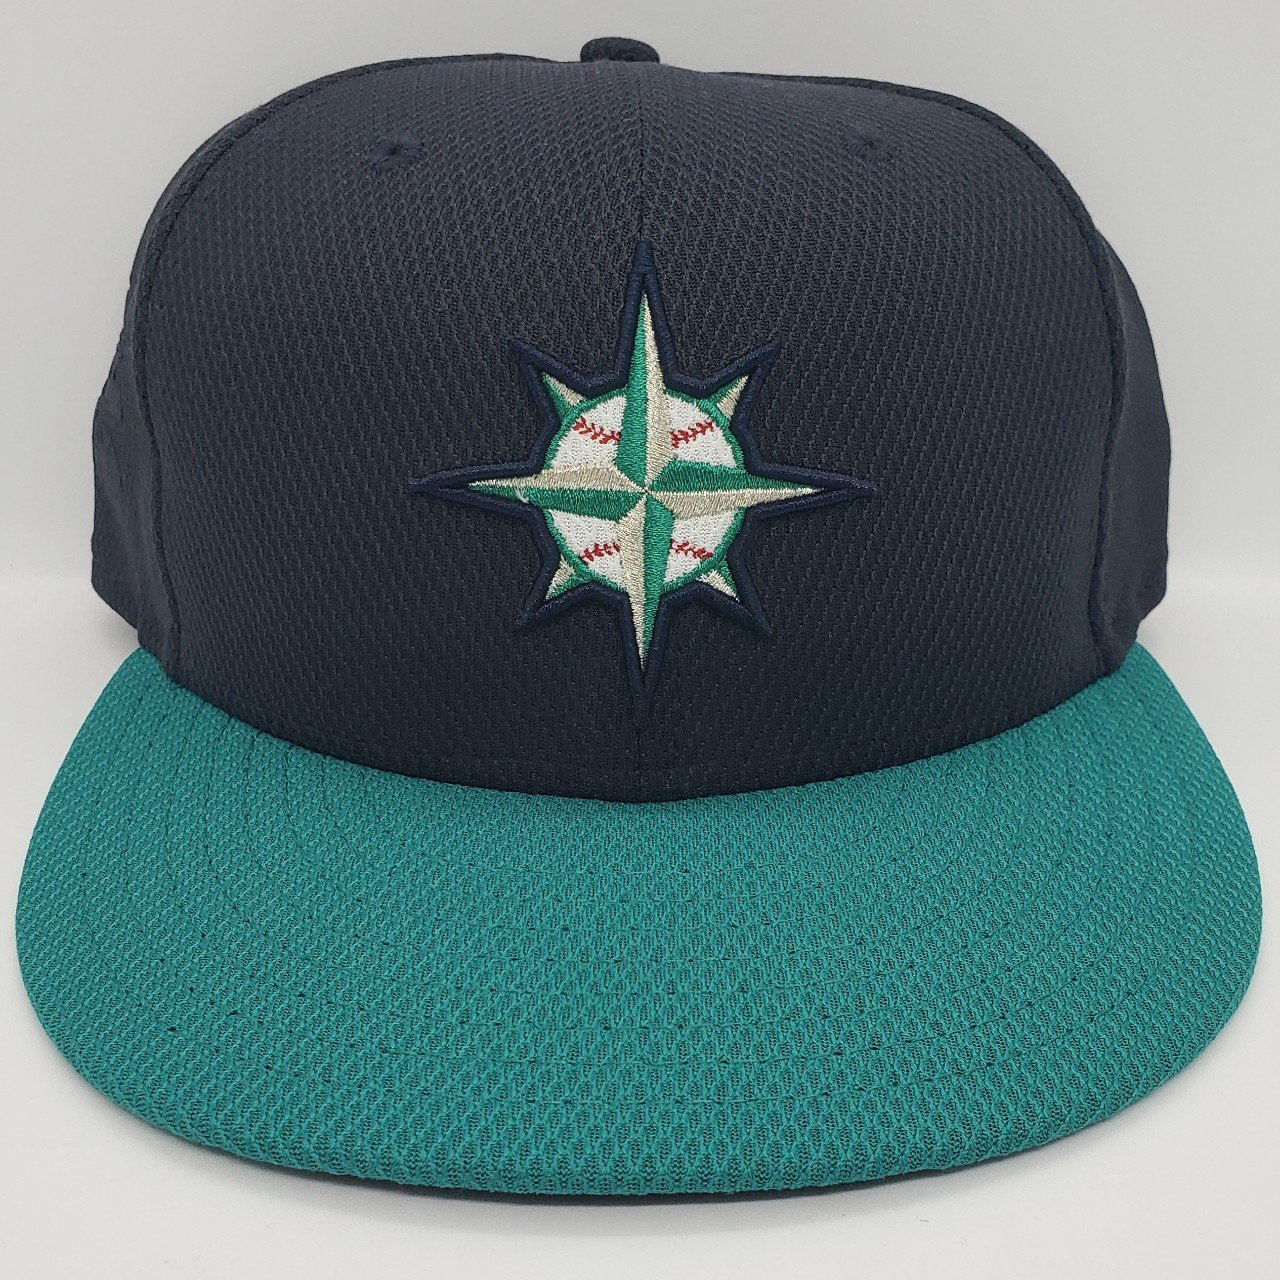 sports shoes 08f7f 7c848  chenchorockboutique. 2 months ago. Atlanta, Georgia, US. New Era 59Fifty Seattle  Mariners Authentic MLB Cap Alternate Fitted Size 7 3 8.